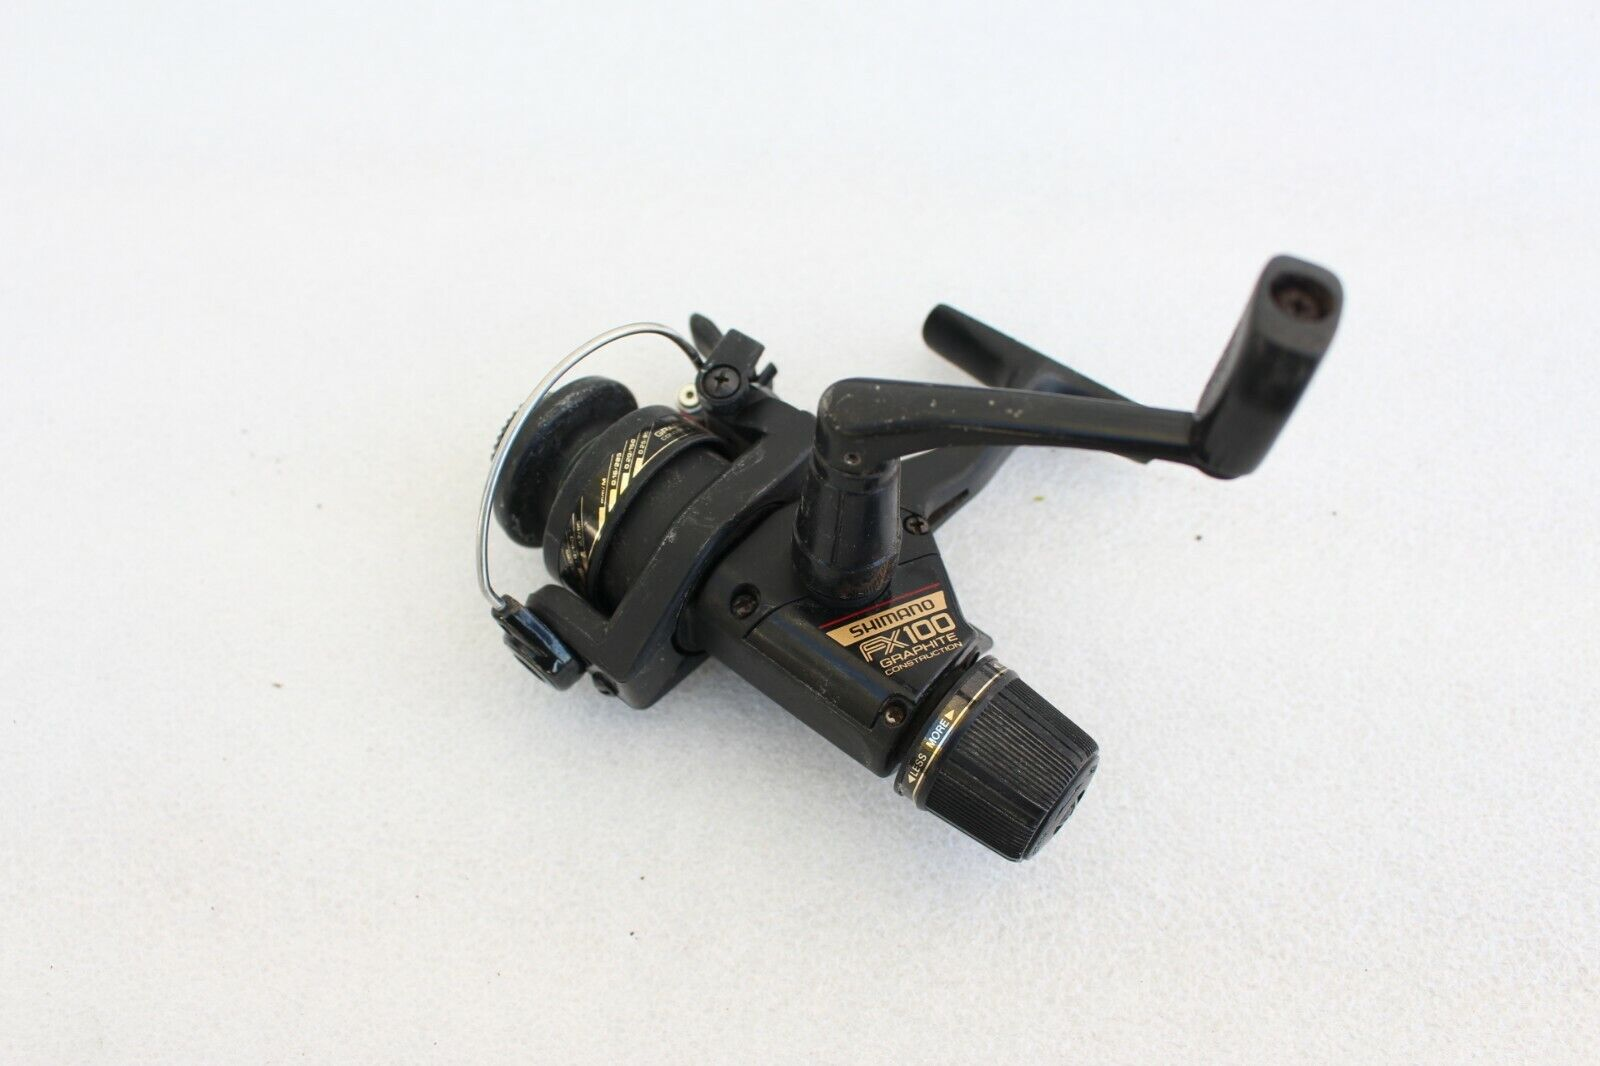 Vintage Shimano FX100 Spinning Fishing Reel Collector Rare FX 100 Works Great